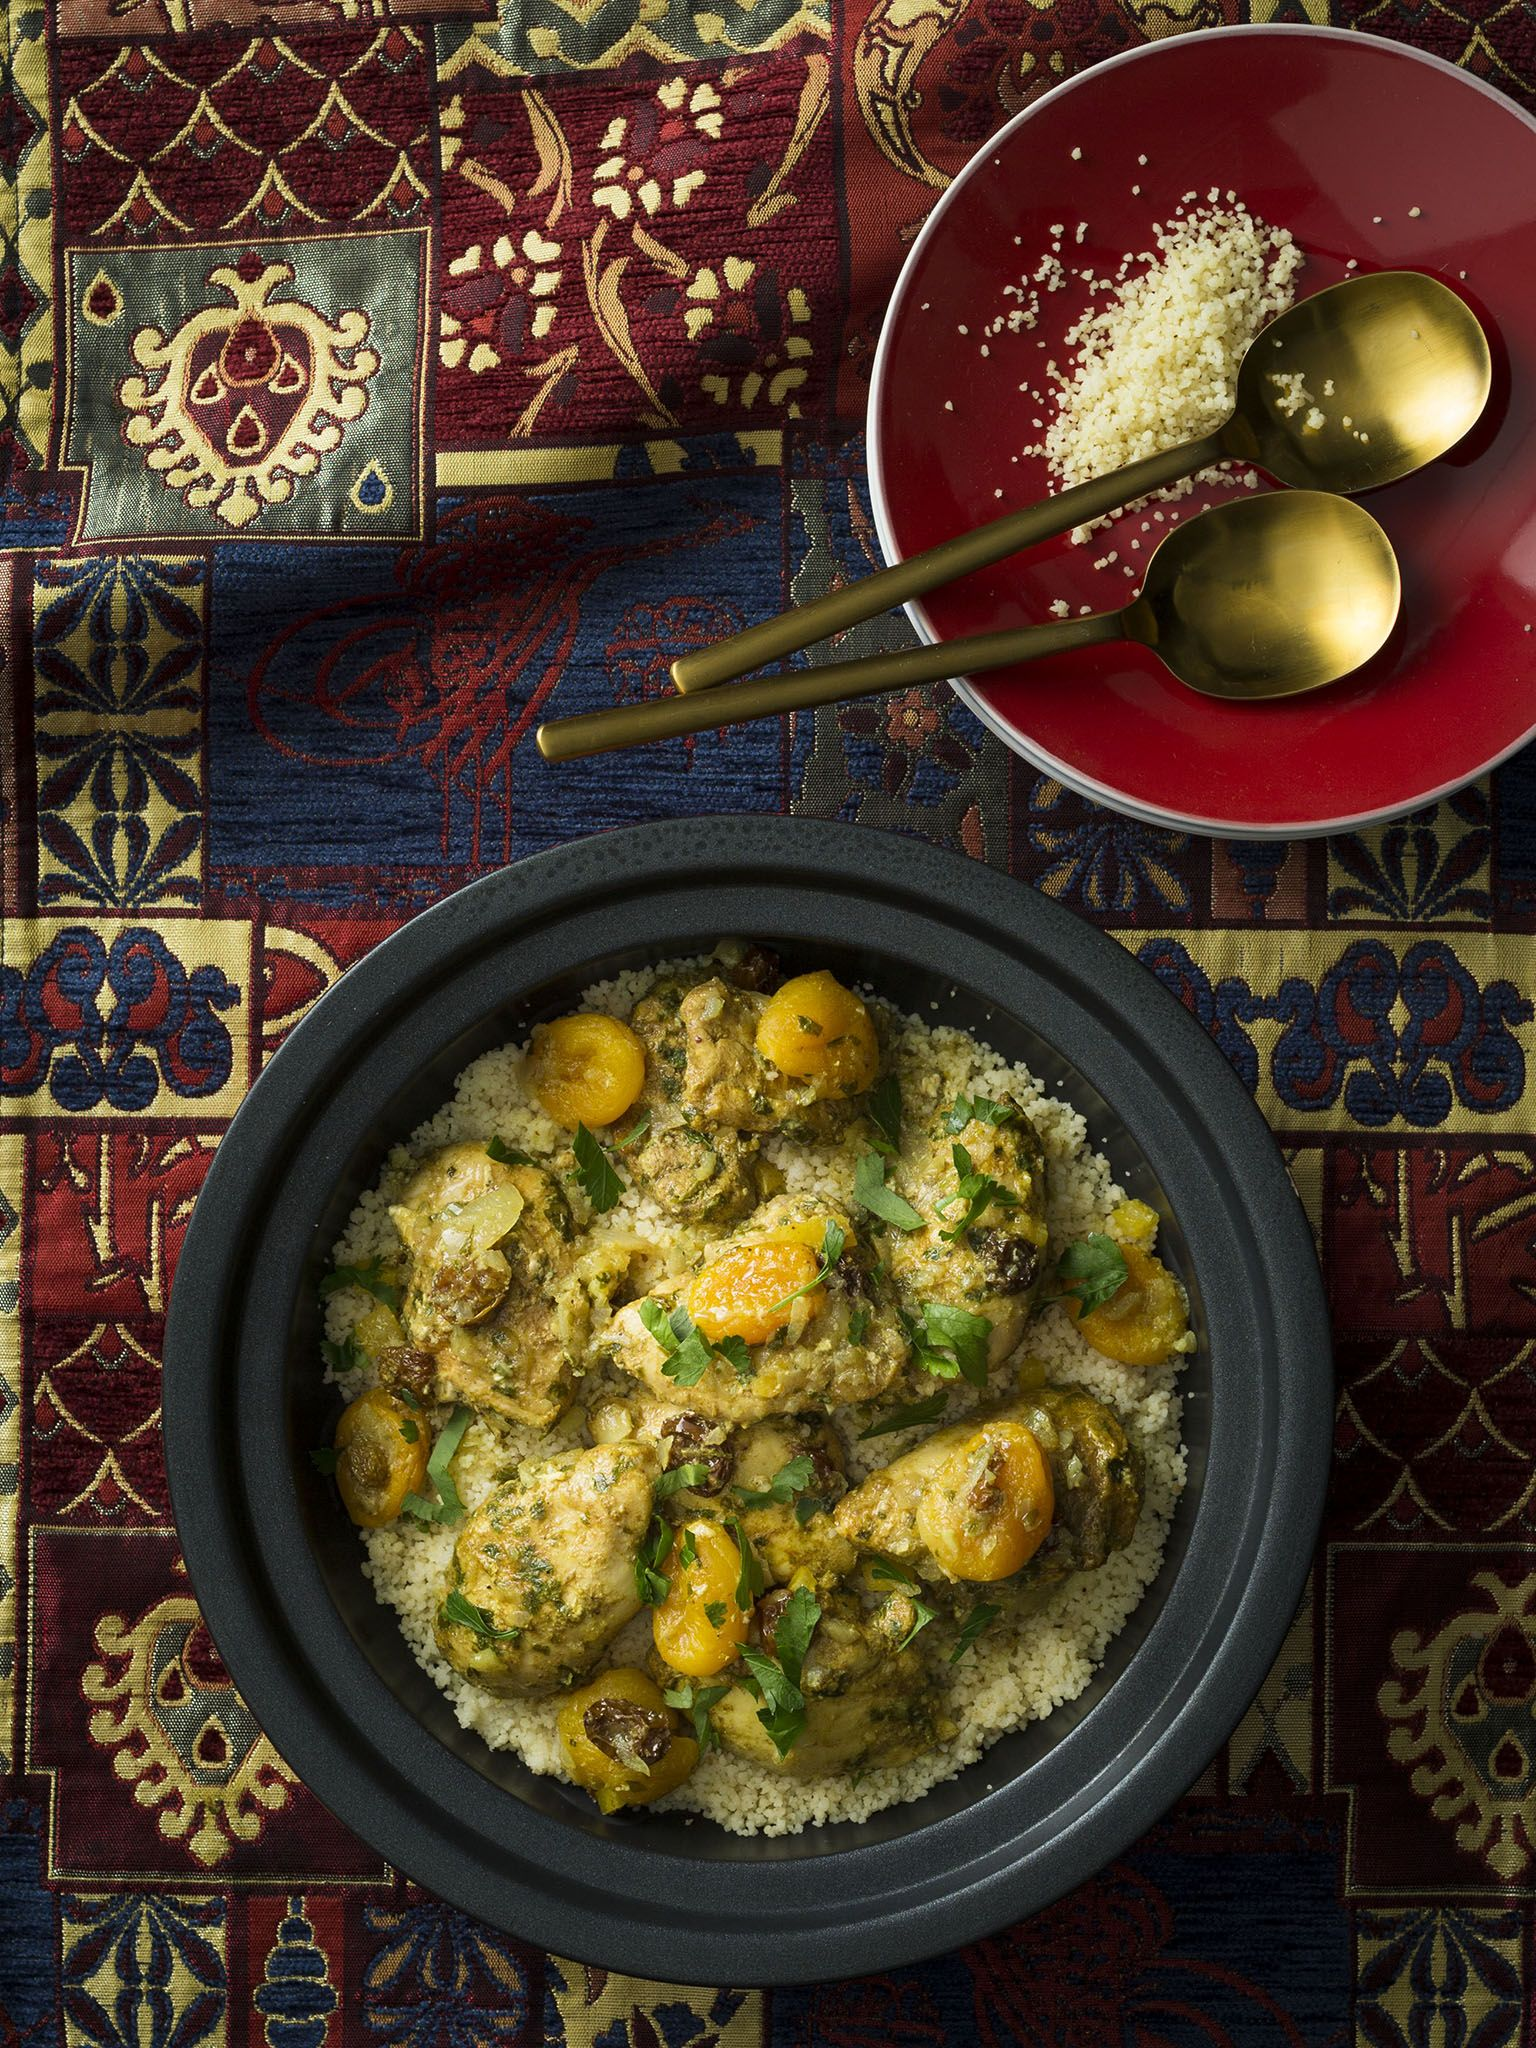 Moroccan chicken with couscous thermomix good food gluten free moroccan chicken with couscous thermomix good food gluten free forumfinder Choice Image